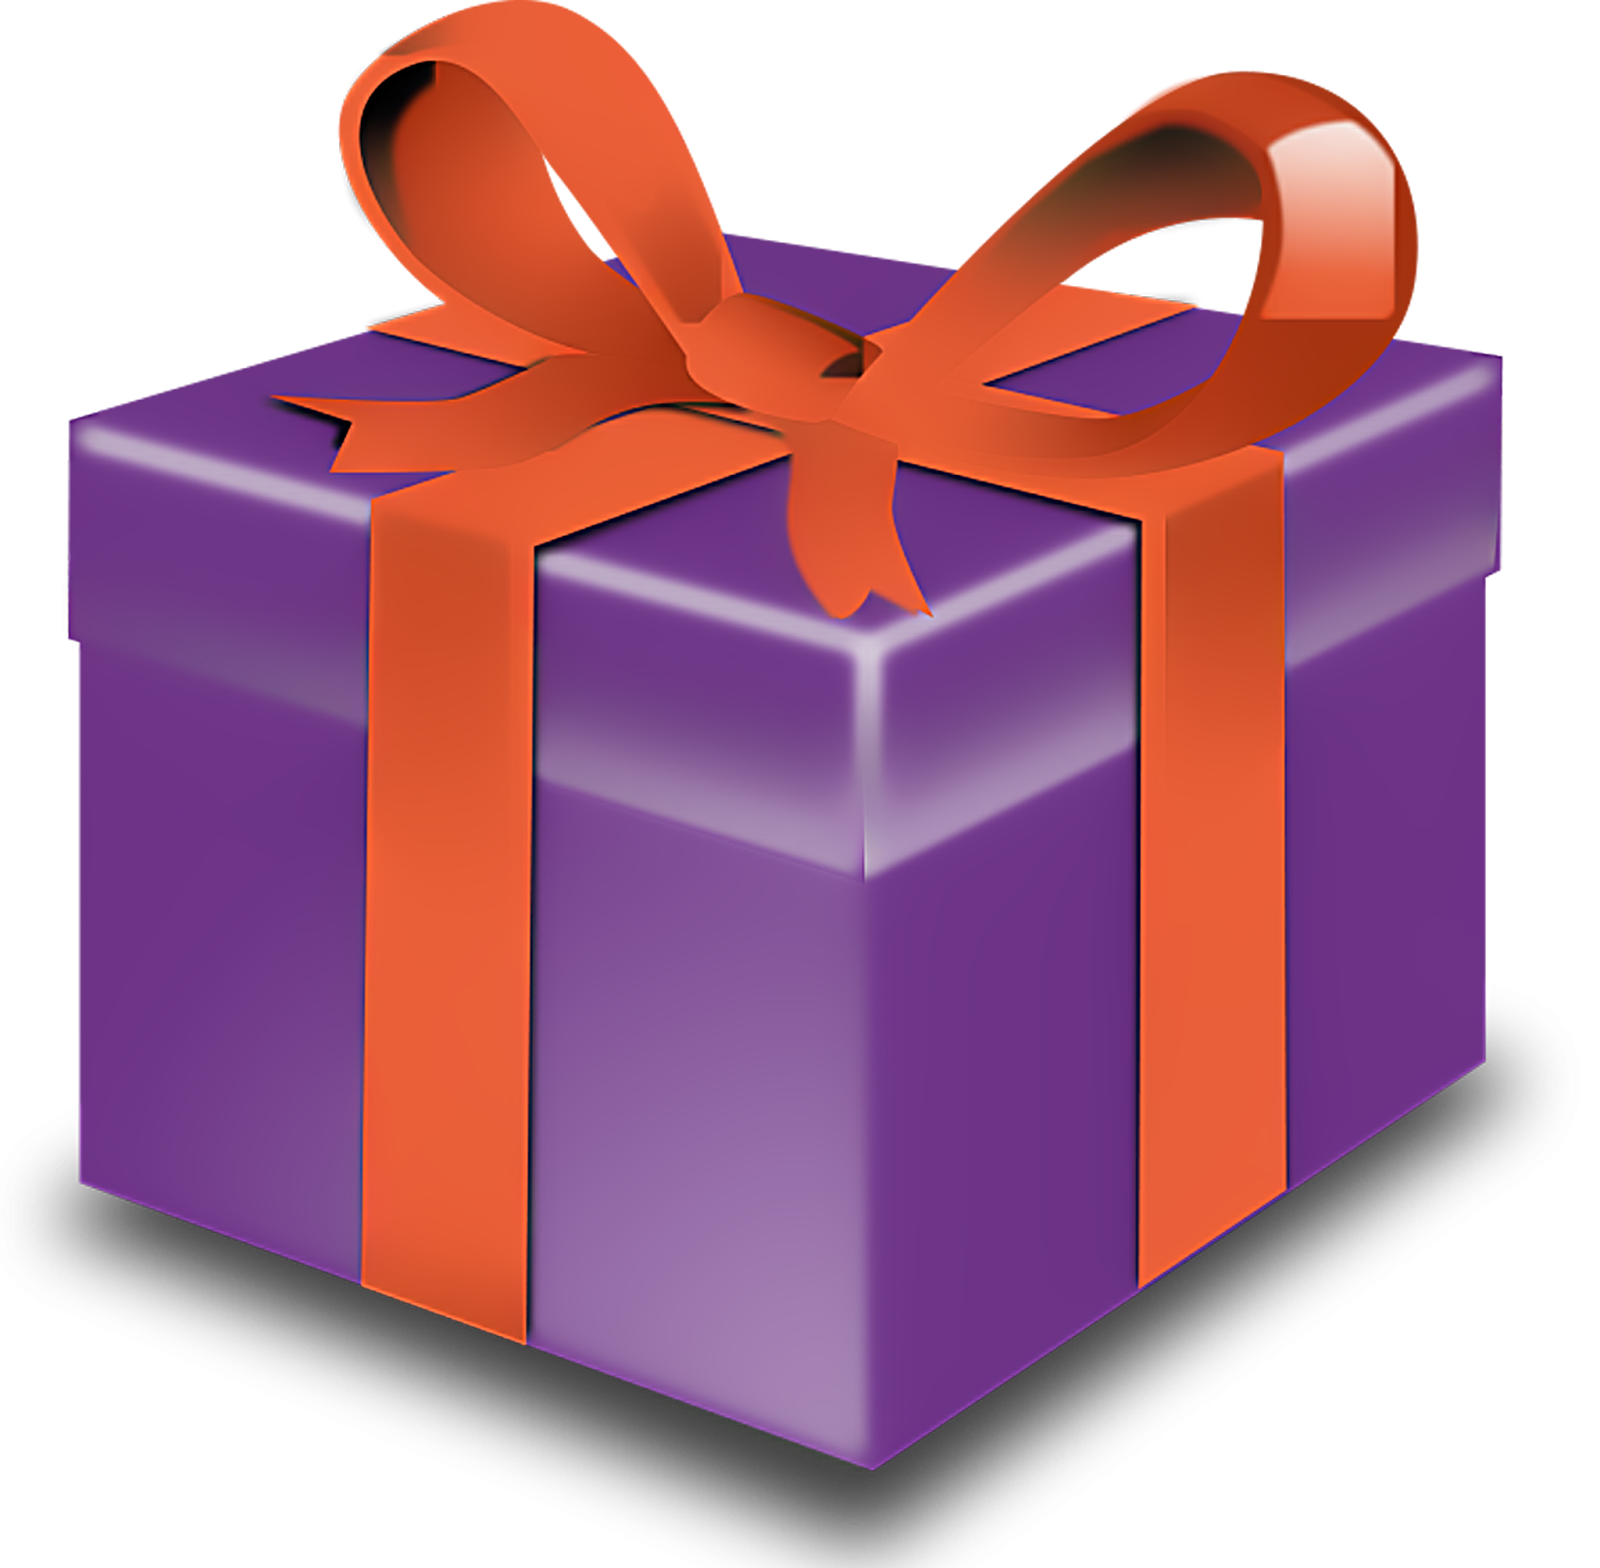 Gift clipart bunch. Present box at getdrawings